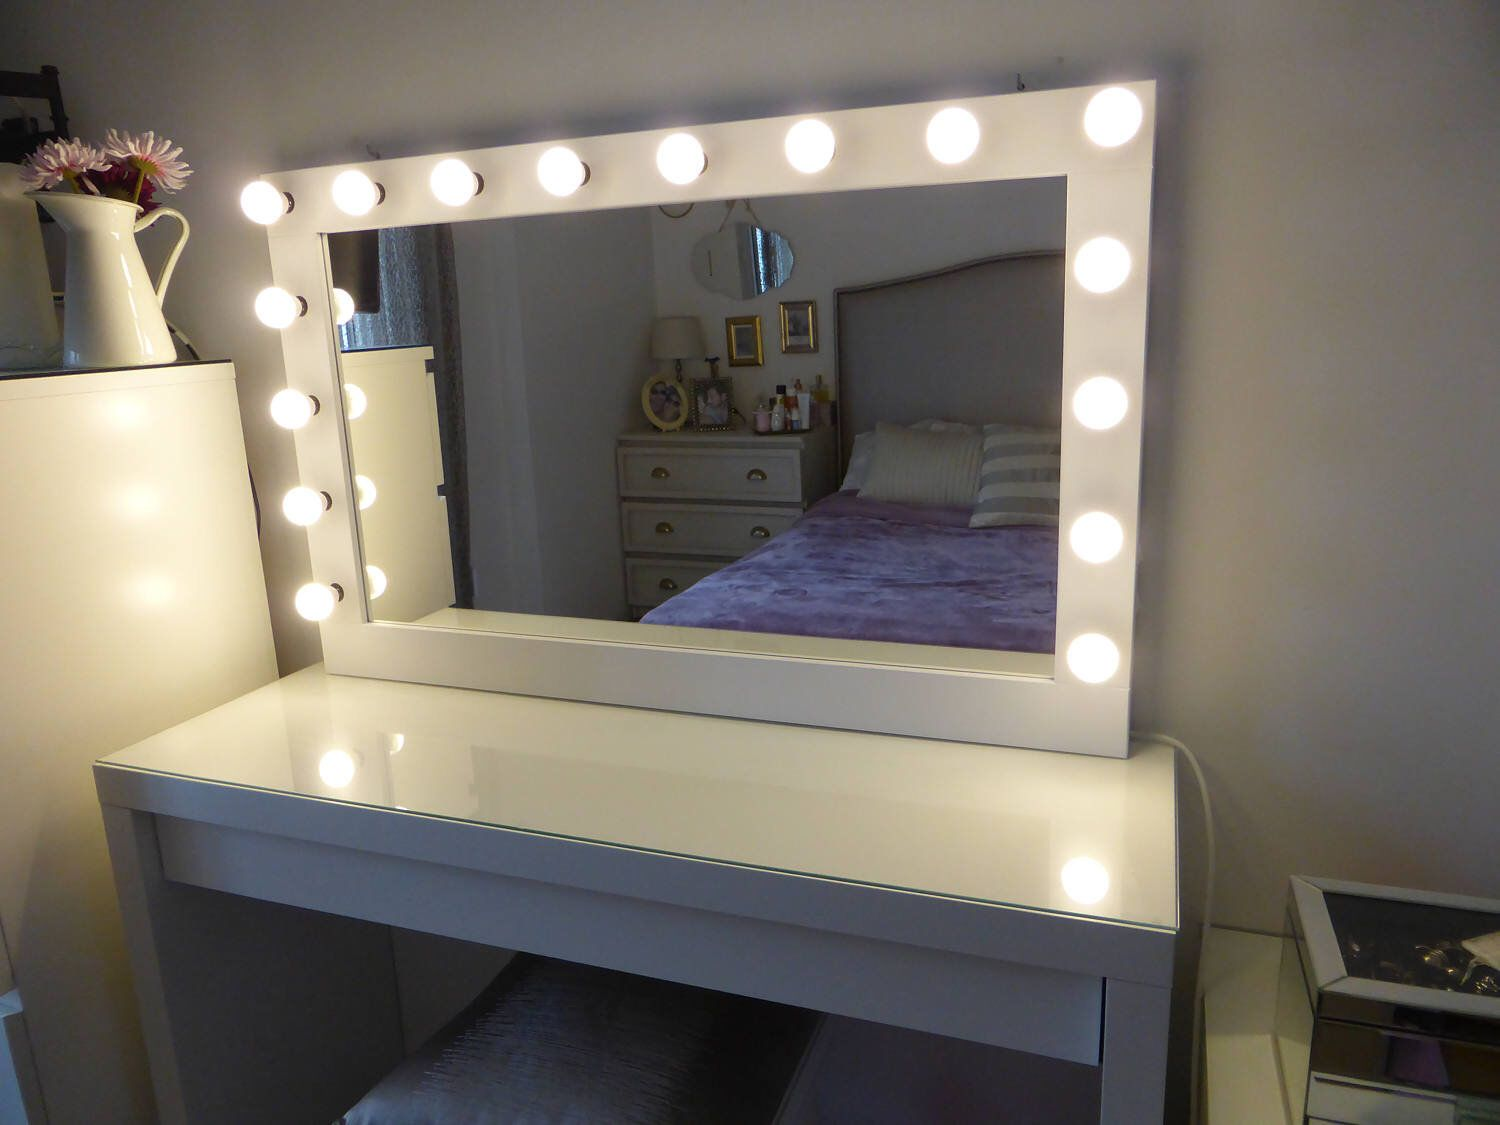 Super Sale Xxl Vanity Mirror 43x27 Hollywood Etsy In 2021 Hollywood Lighted Vanity Mirror Makeup Mirror With Lights Hollywood Vanity Mirror Vanity with lights for sale